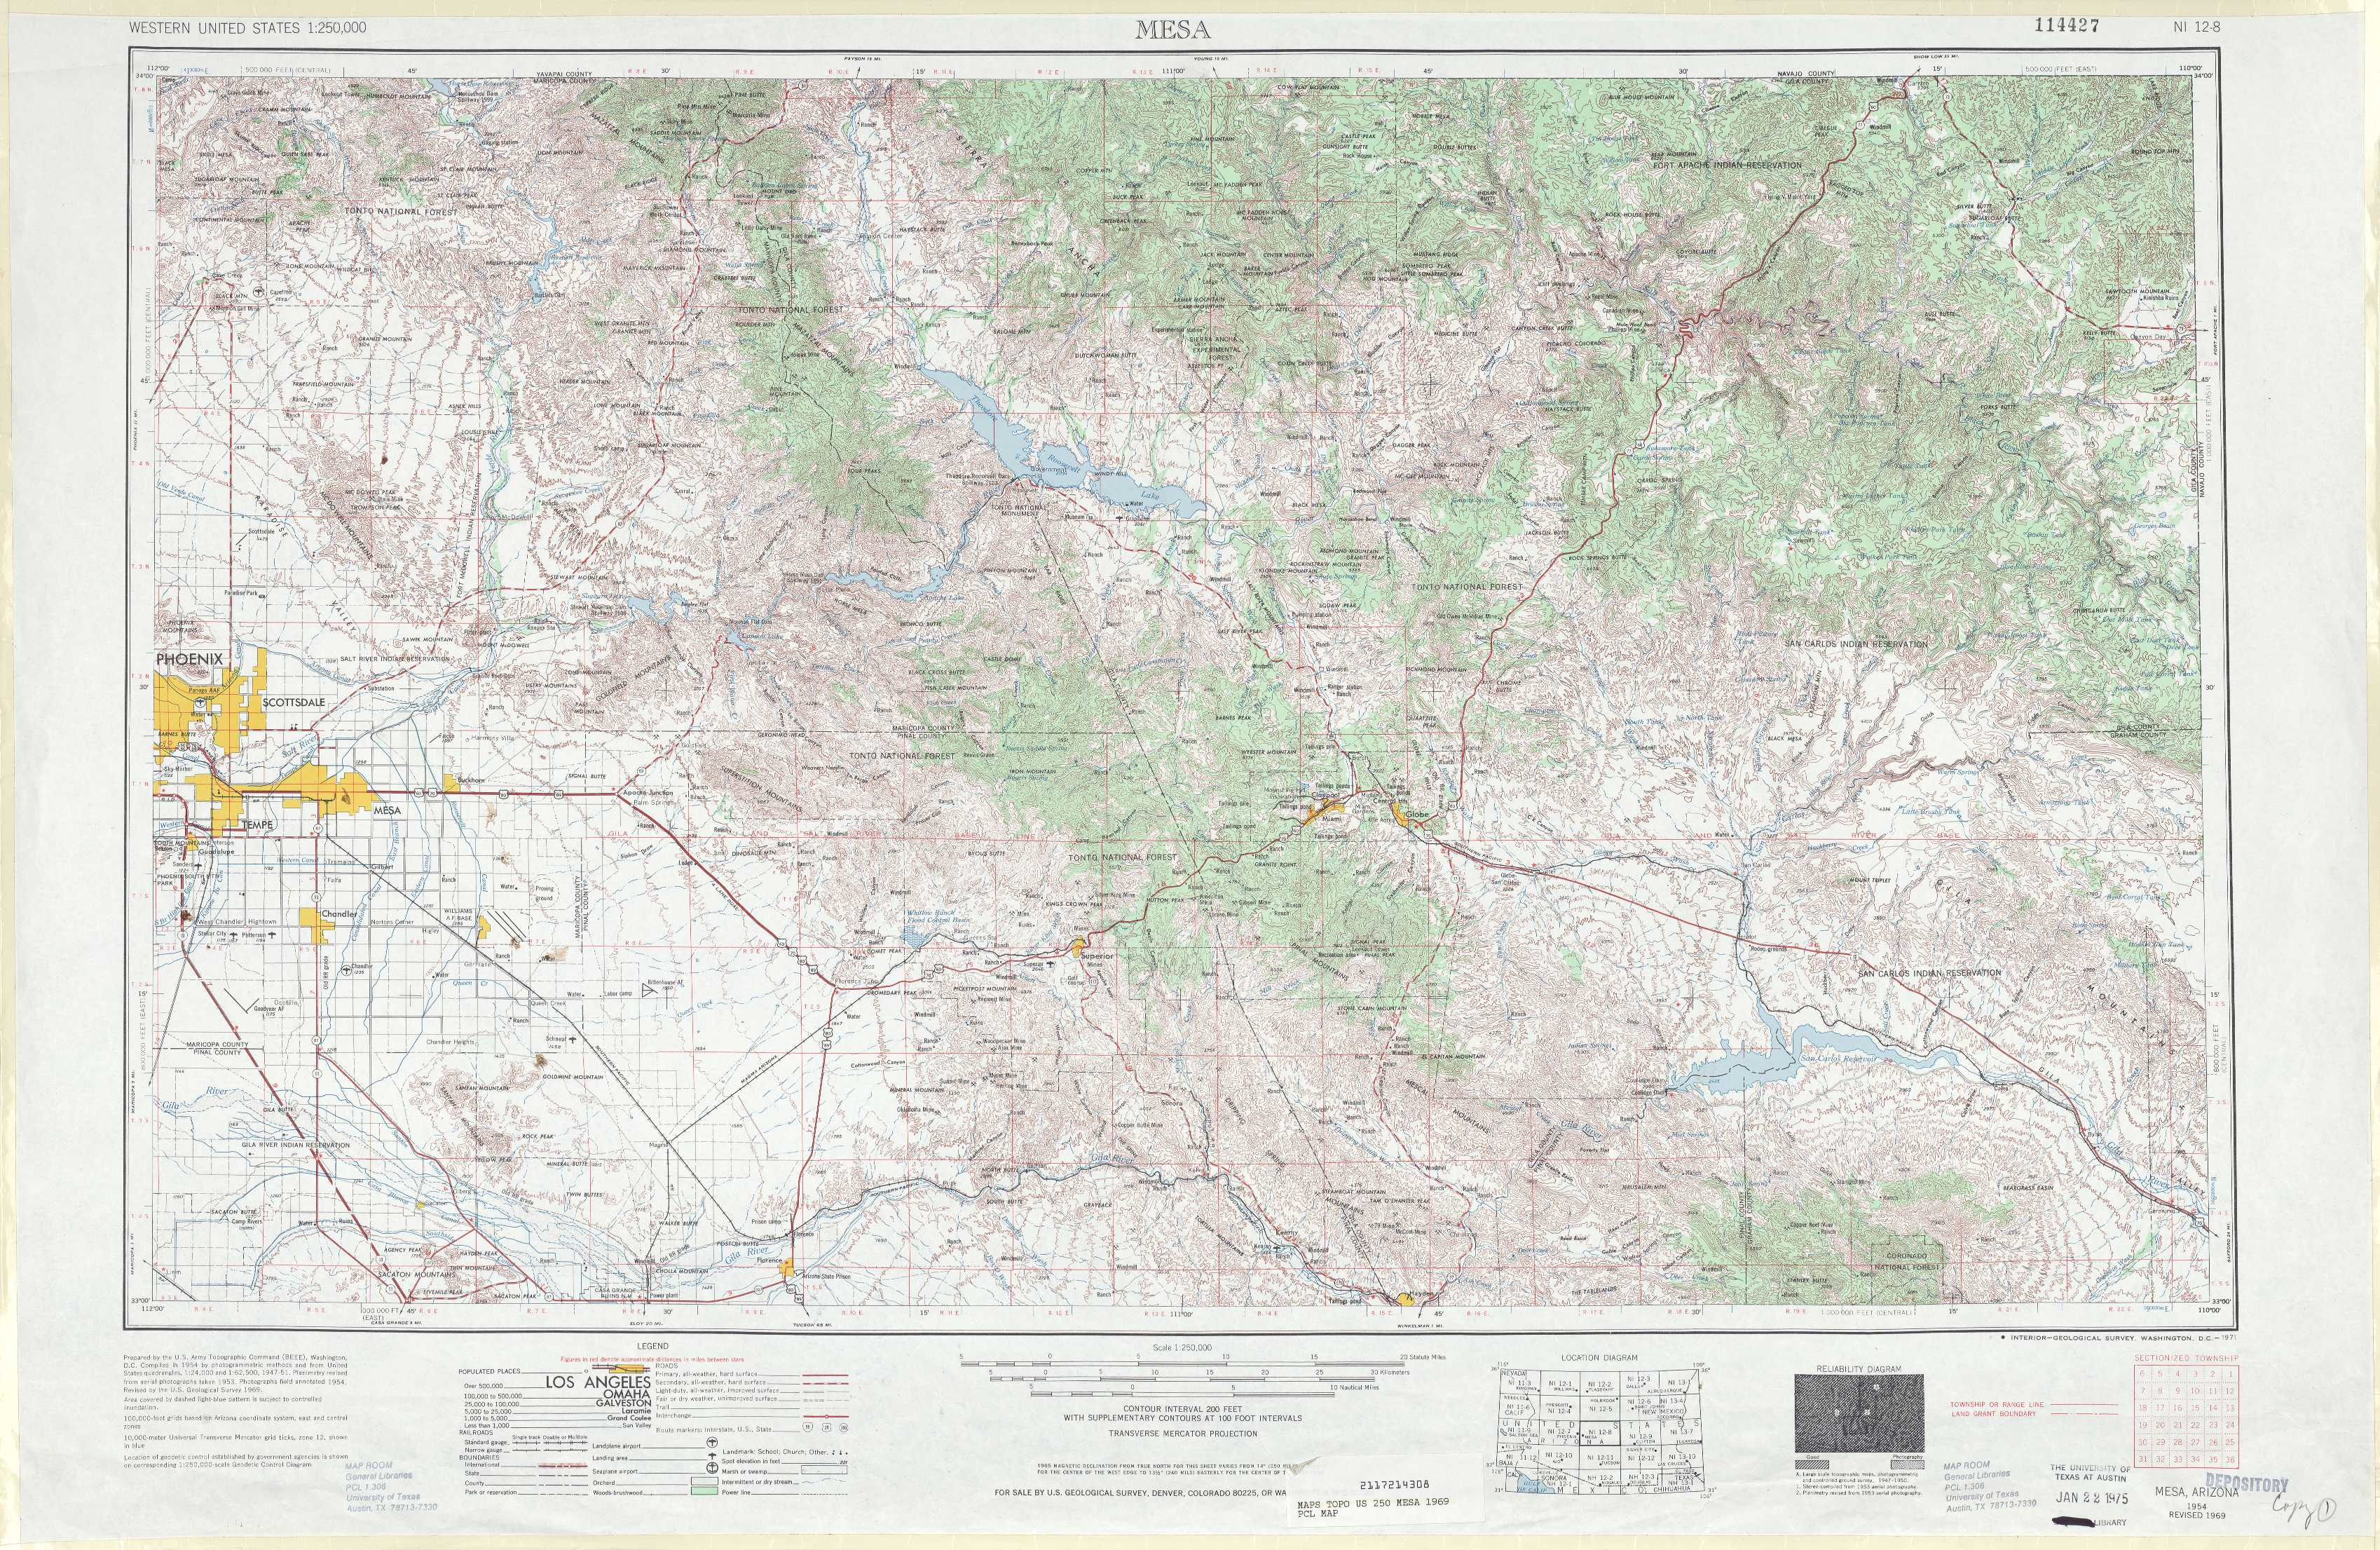 Mesa topographic maps, AZ - USGS Topo Quad 33110a1 at 1 ...